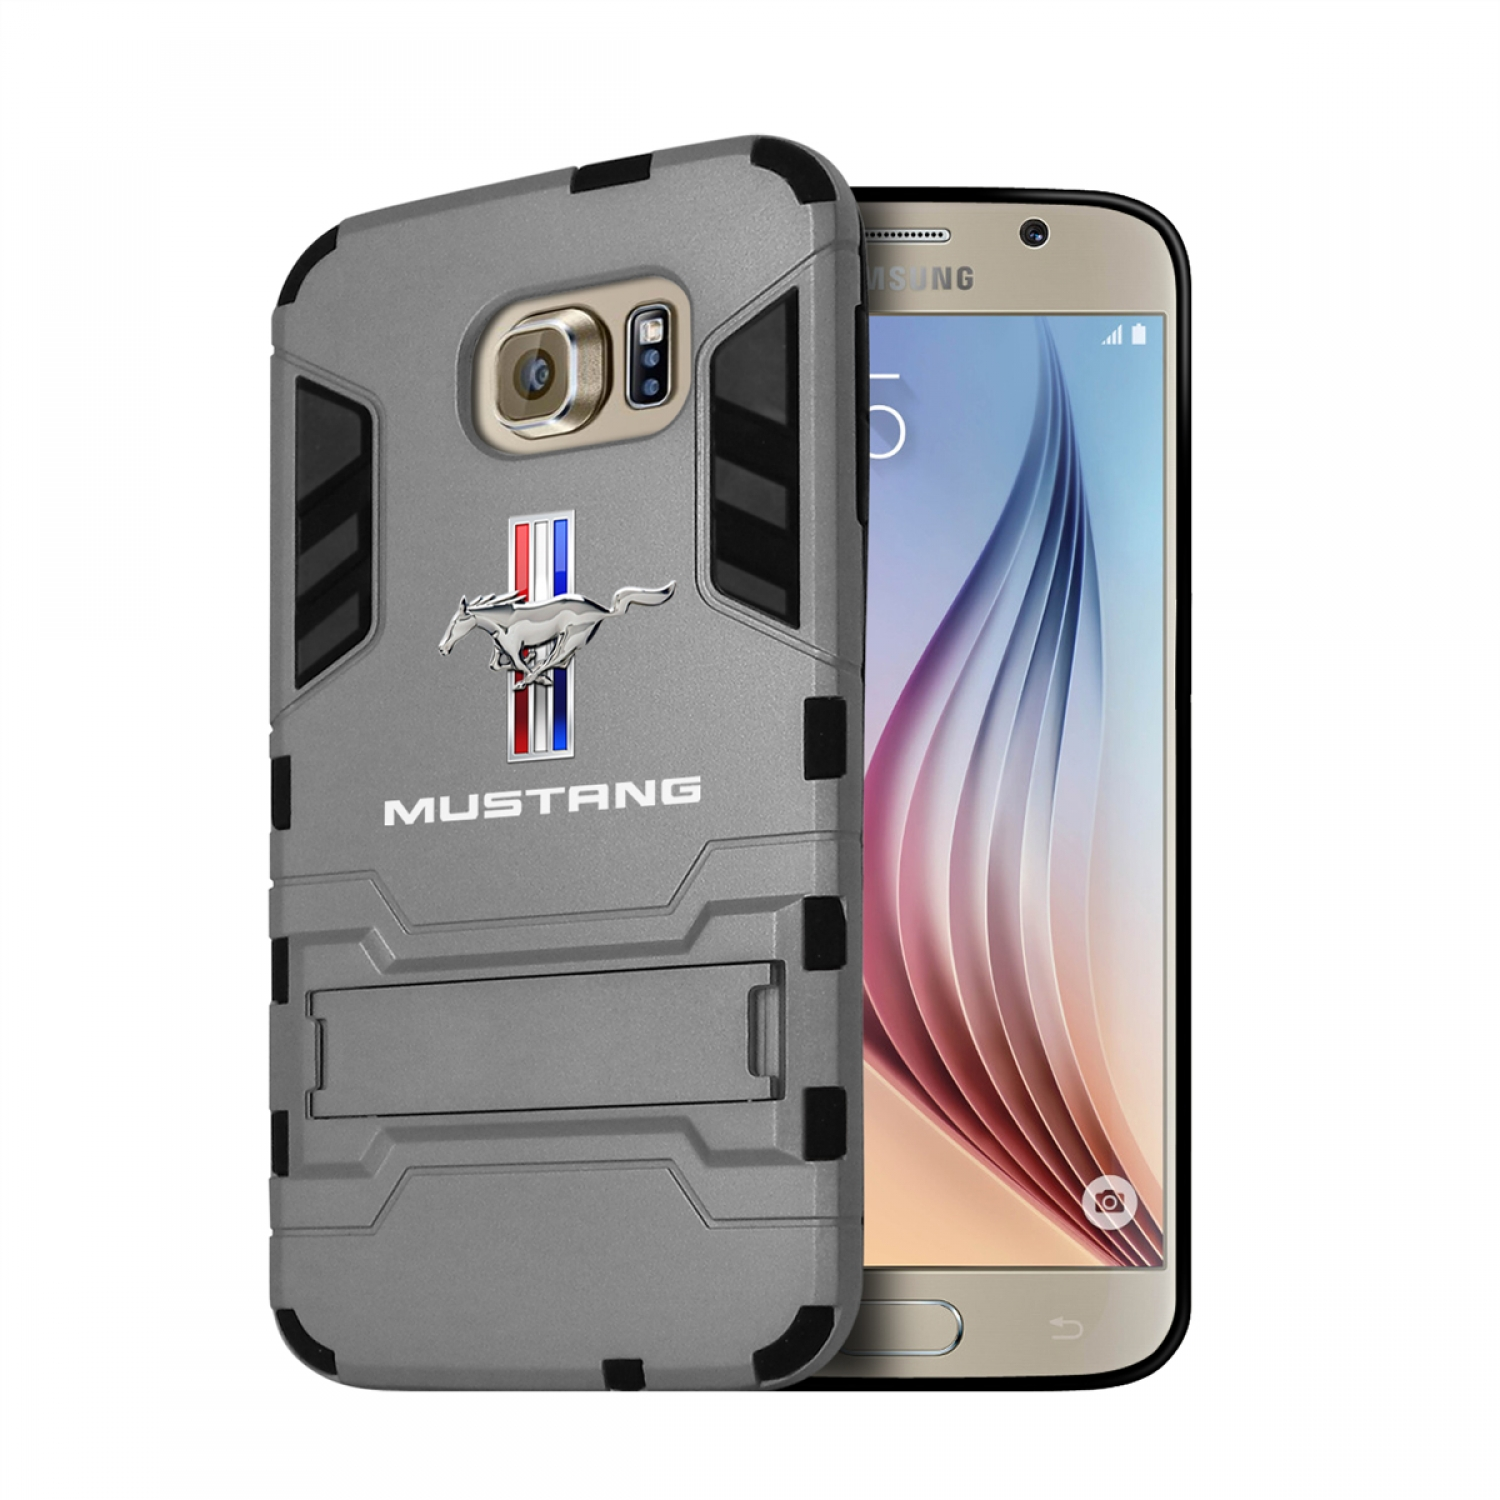 Ford Mustang Tri-Bar Samsung Galaxy S6 Shockproof TPU ABS Hybrid Gray Phone Case